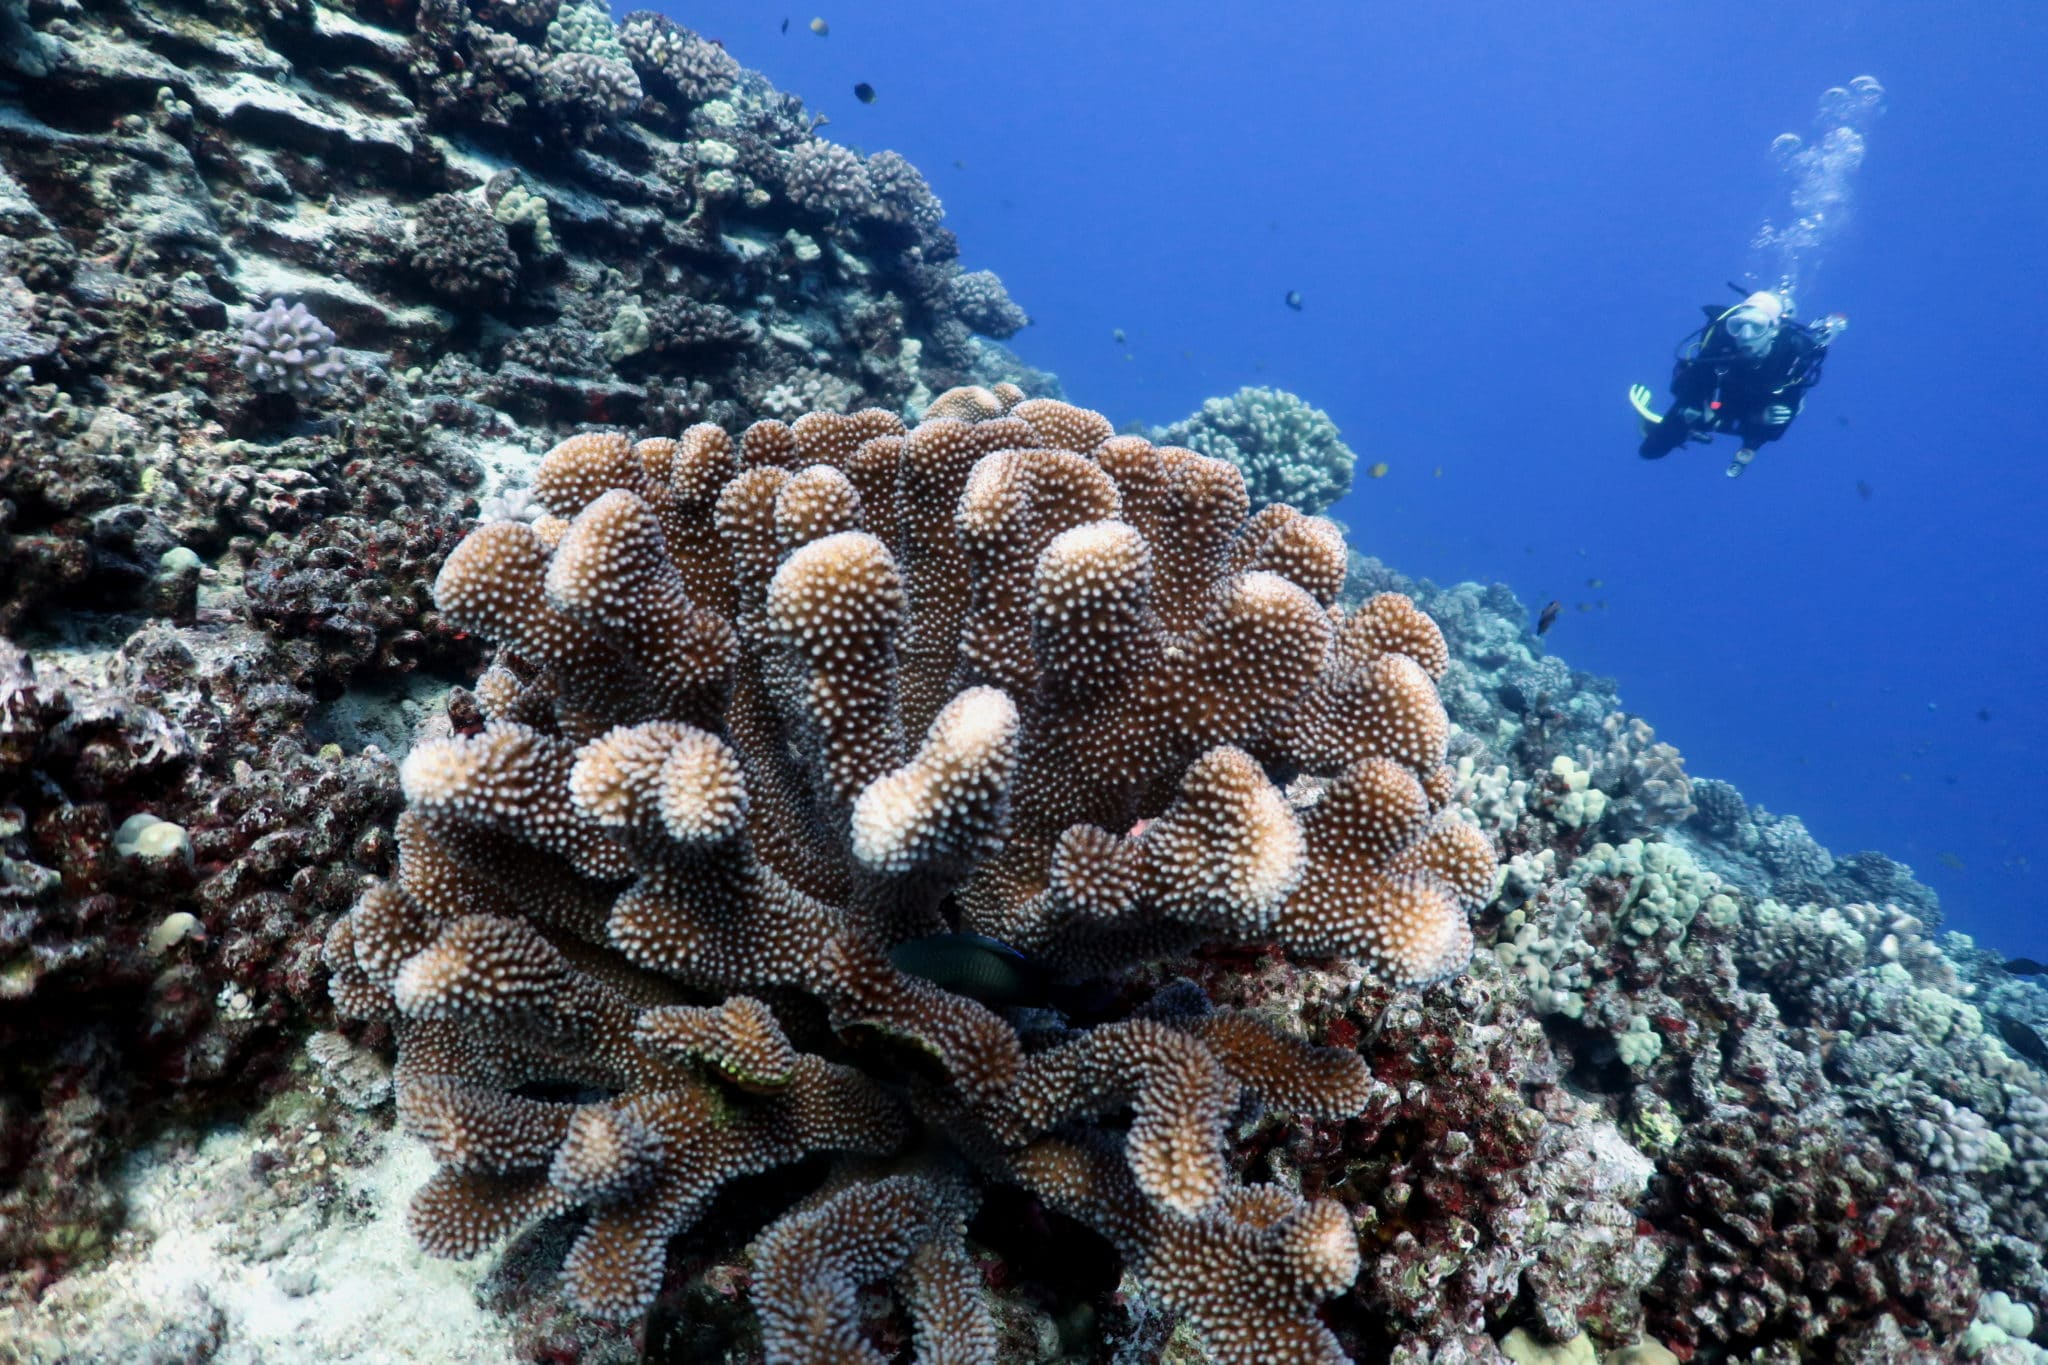 Finger coral - scuba diving in Middle Reef Molokini Crater Maui Hawaii USA